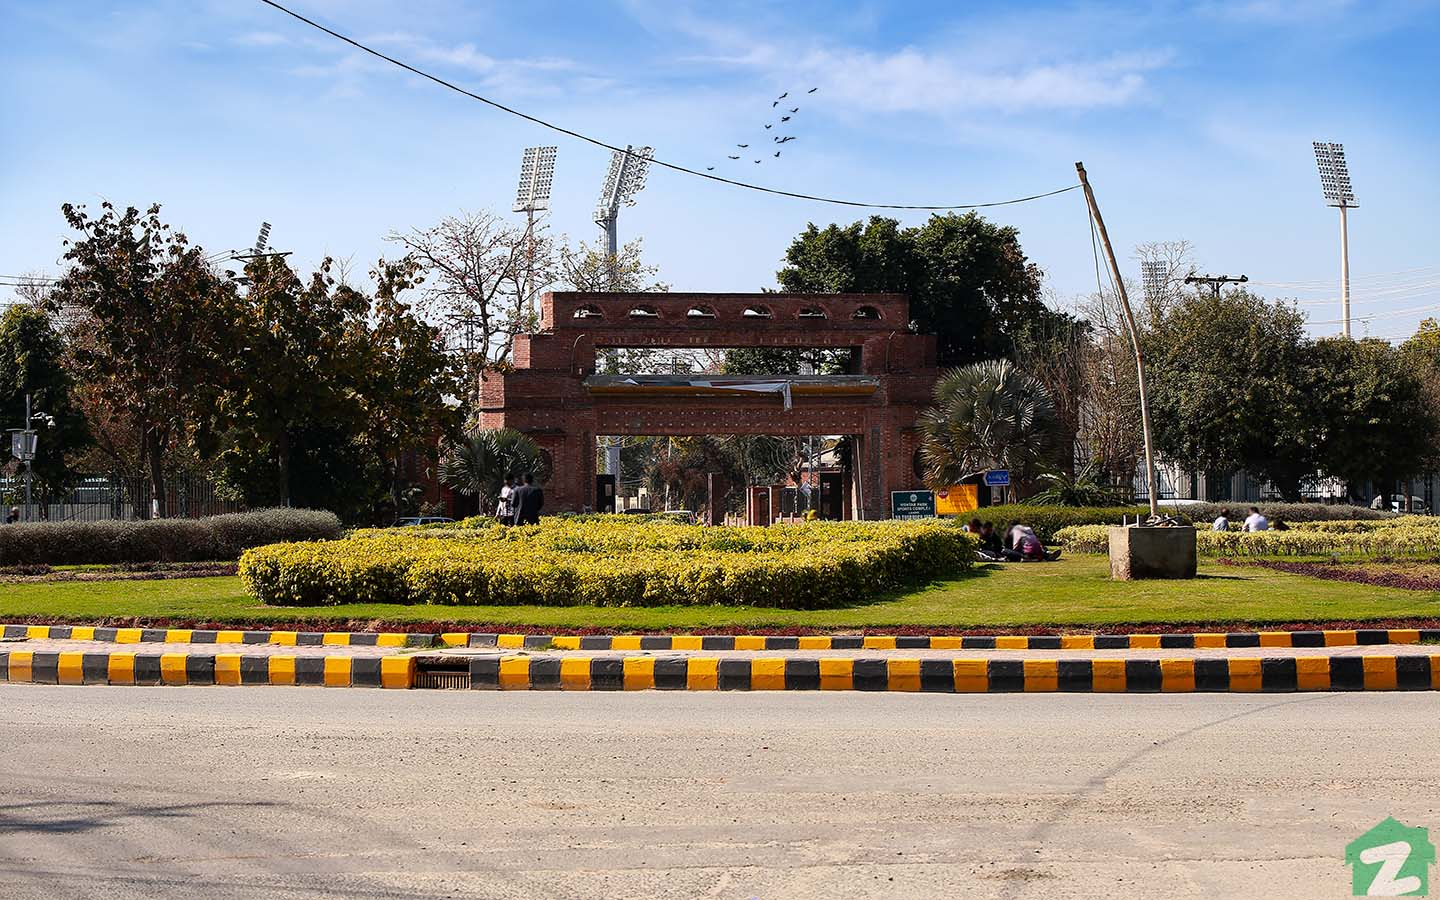 The famous Gaddafi Stadium is situated in Gulberg, Lahore.